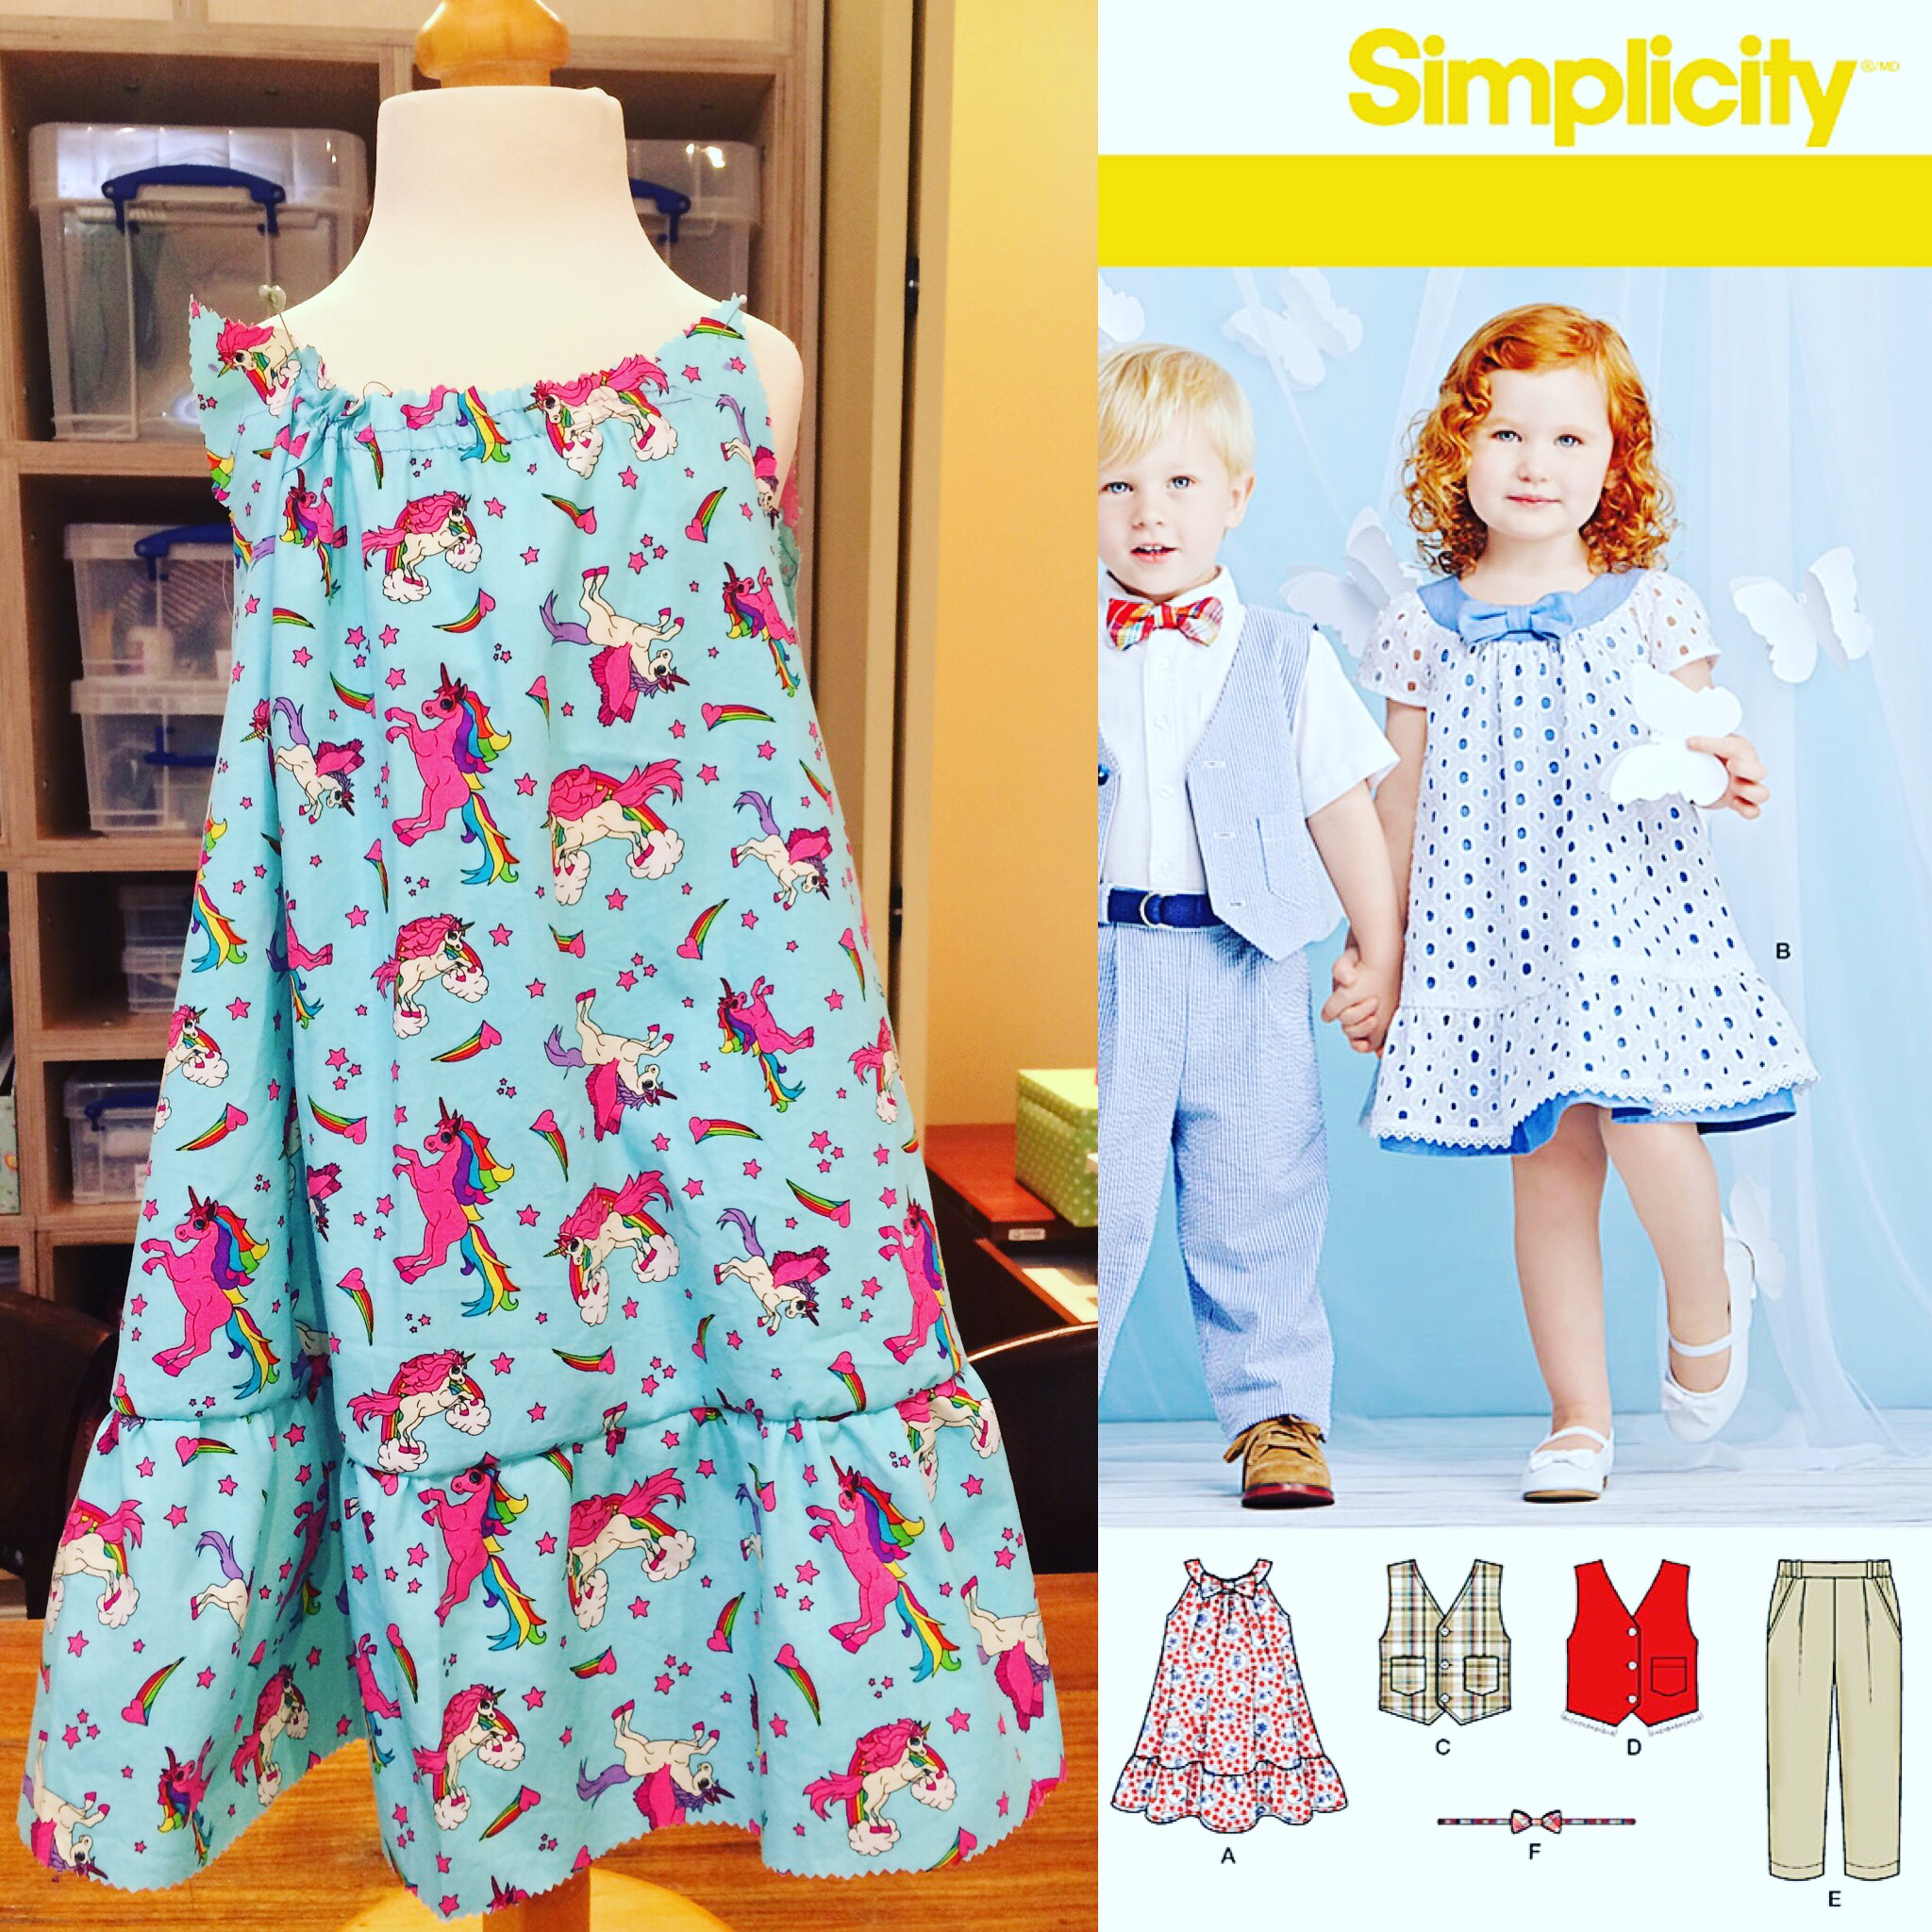 Simplicity sewing challenge 2016